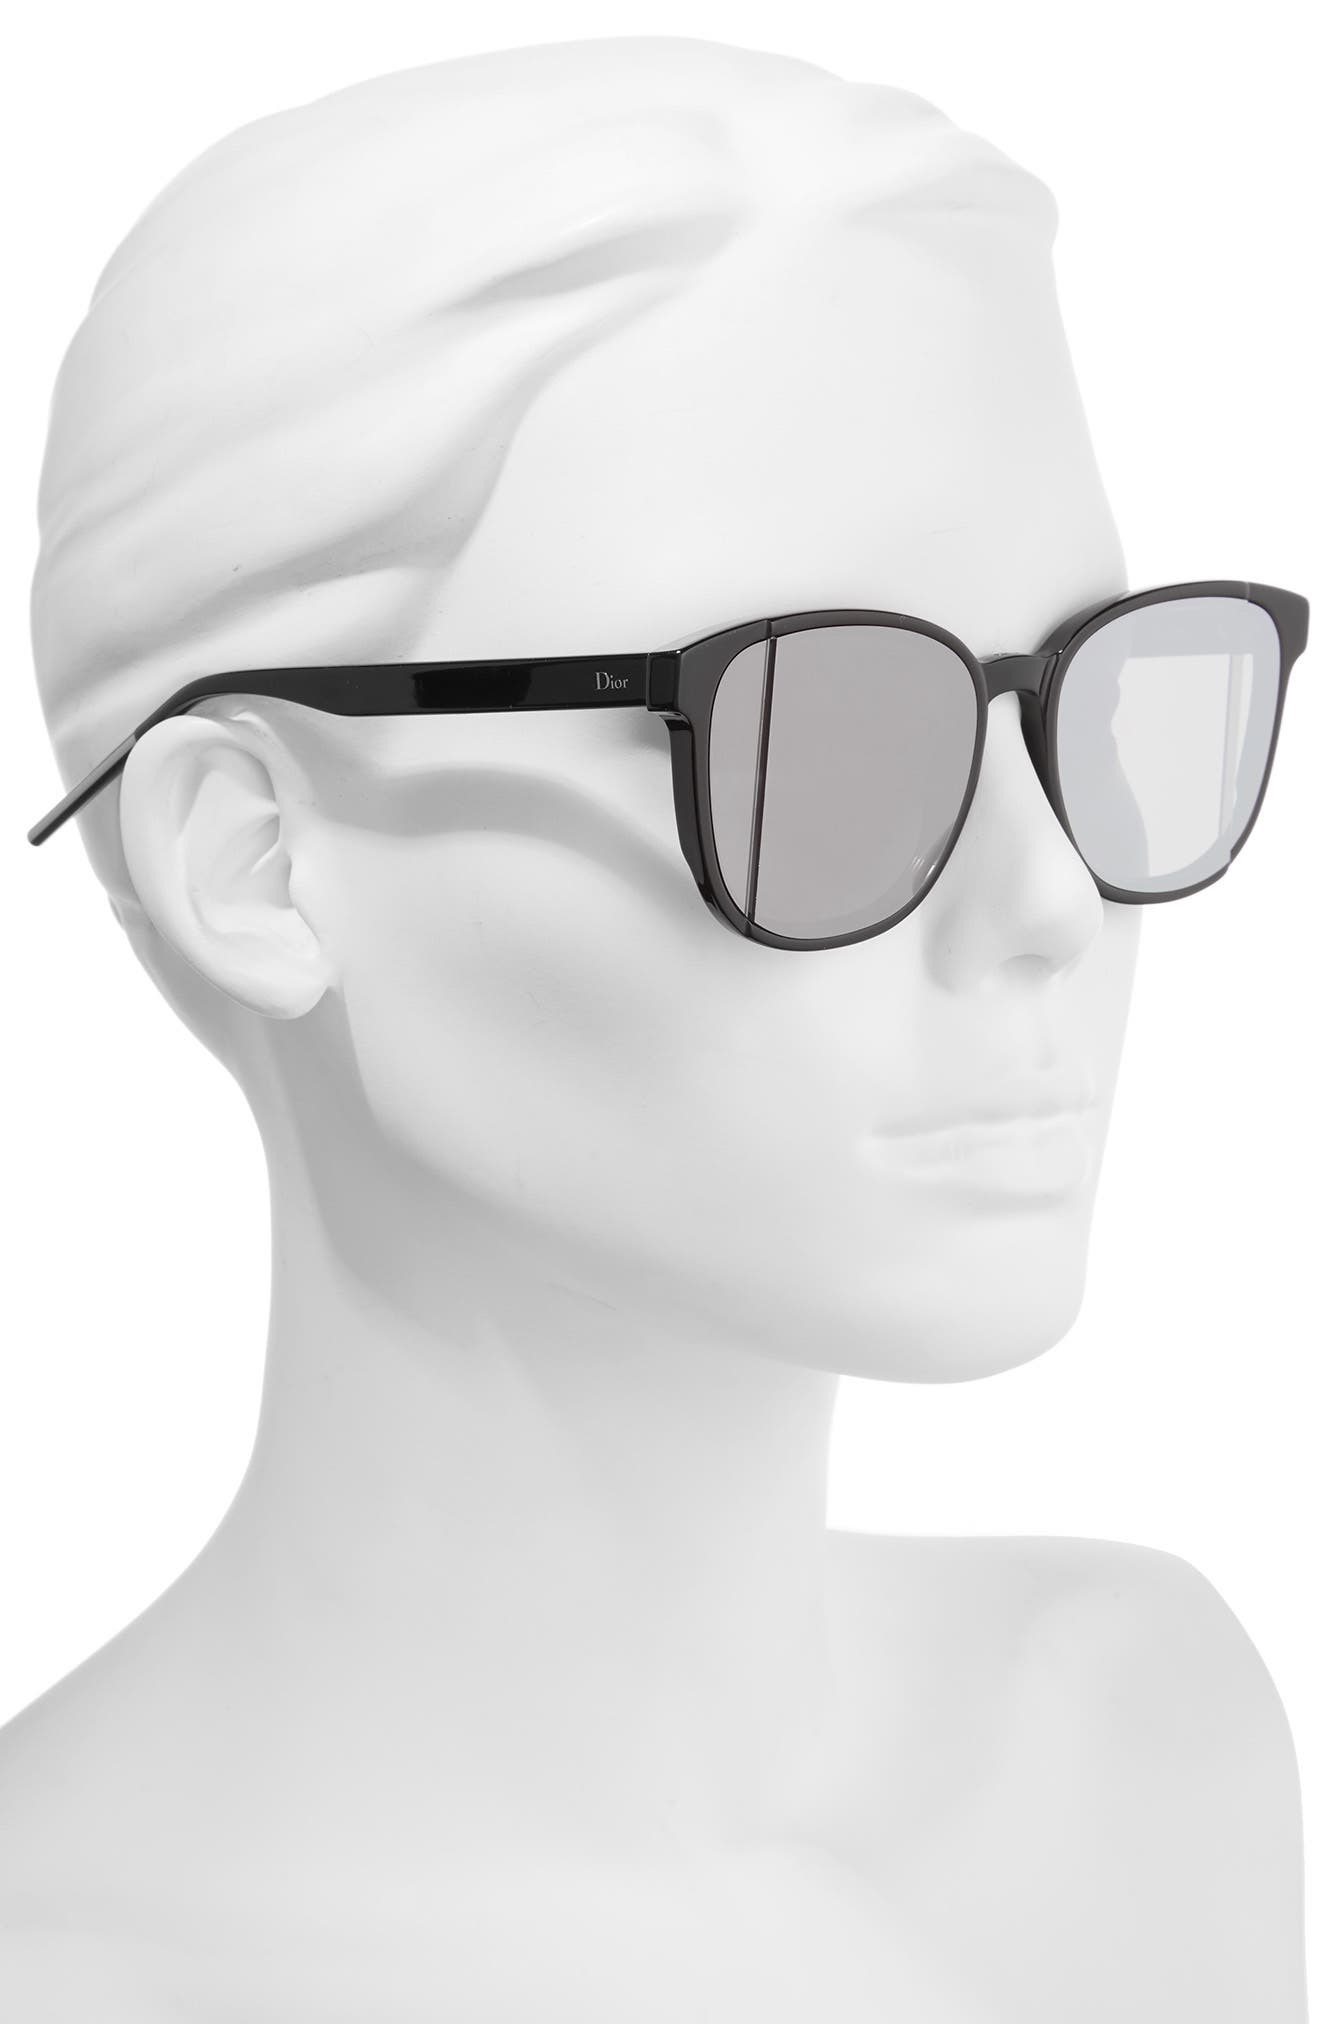 Dior Steps 55mm Sunglasses,                             Alternate thumbnail 2, color,                             001